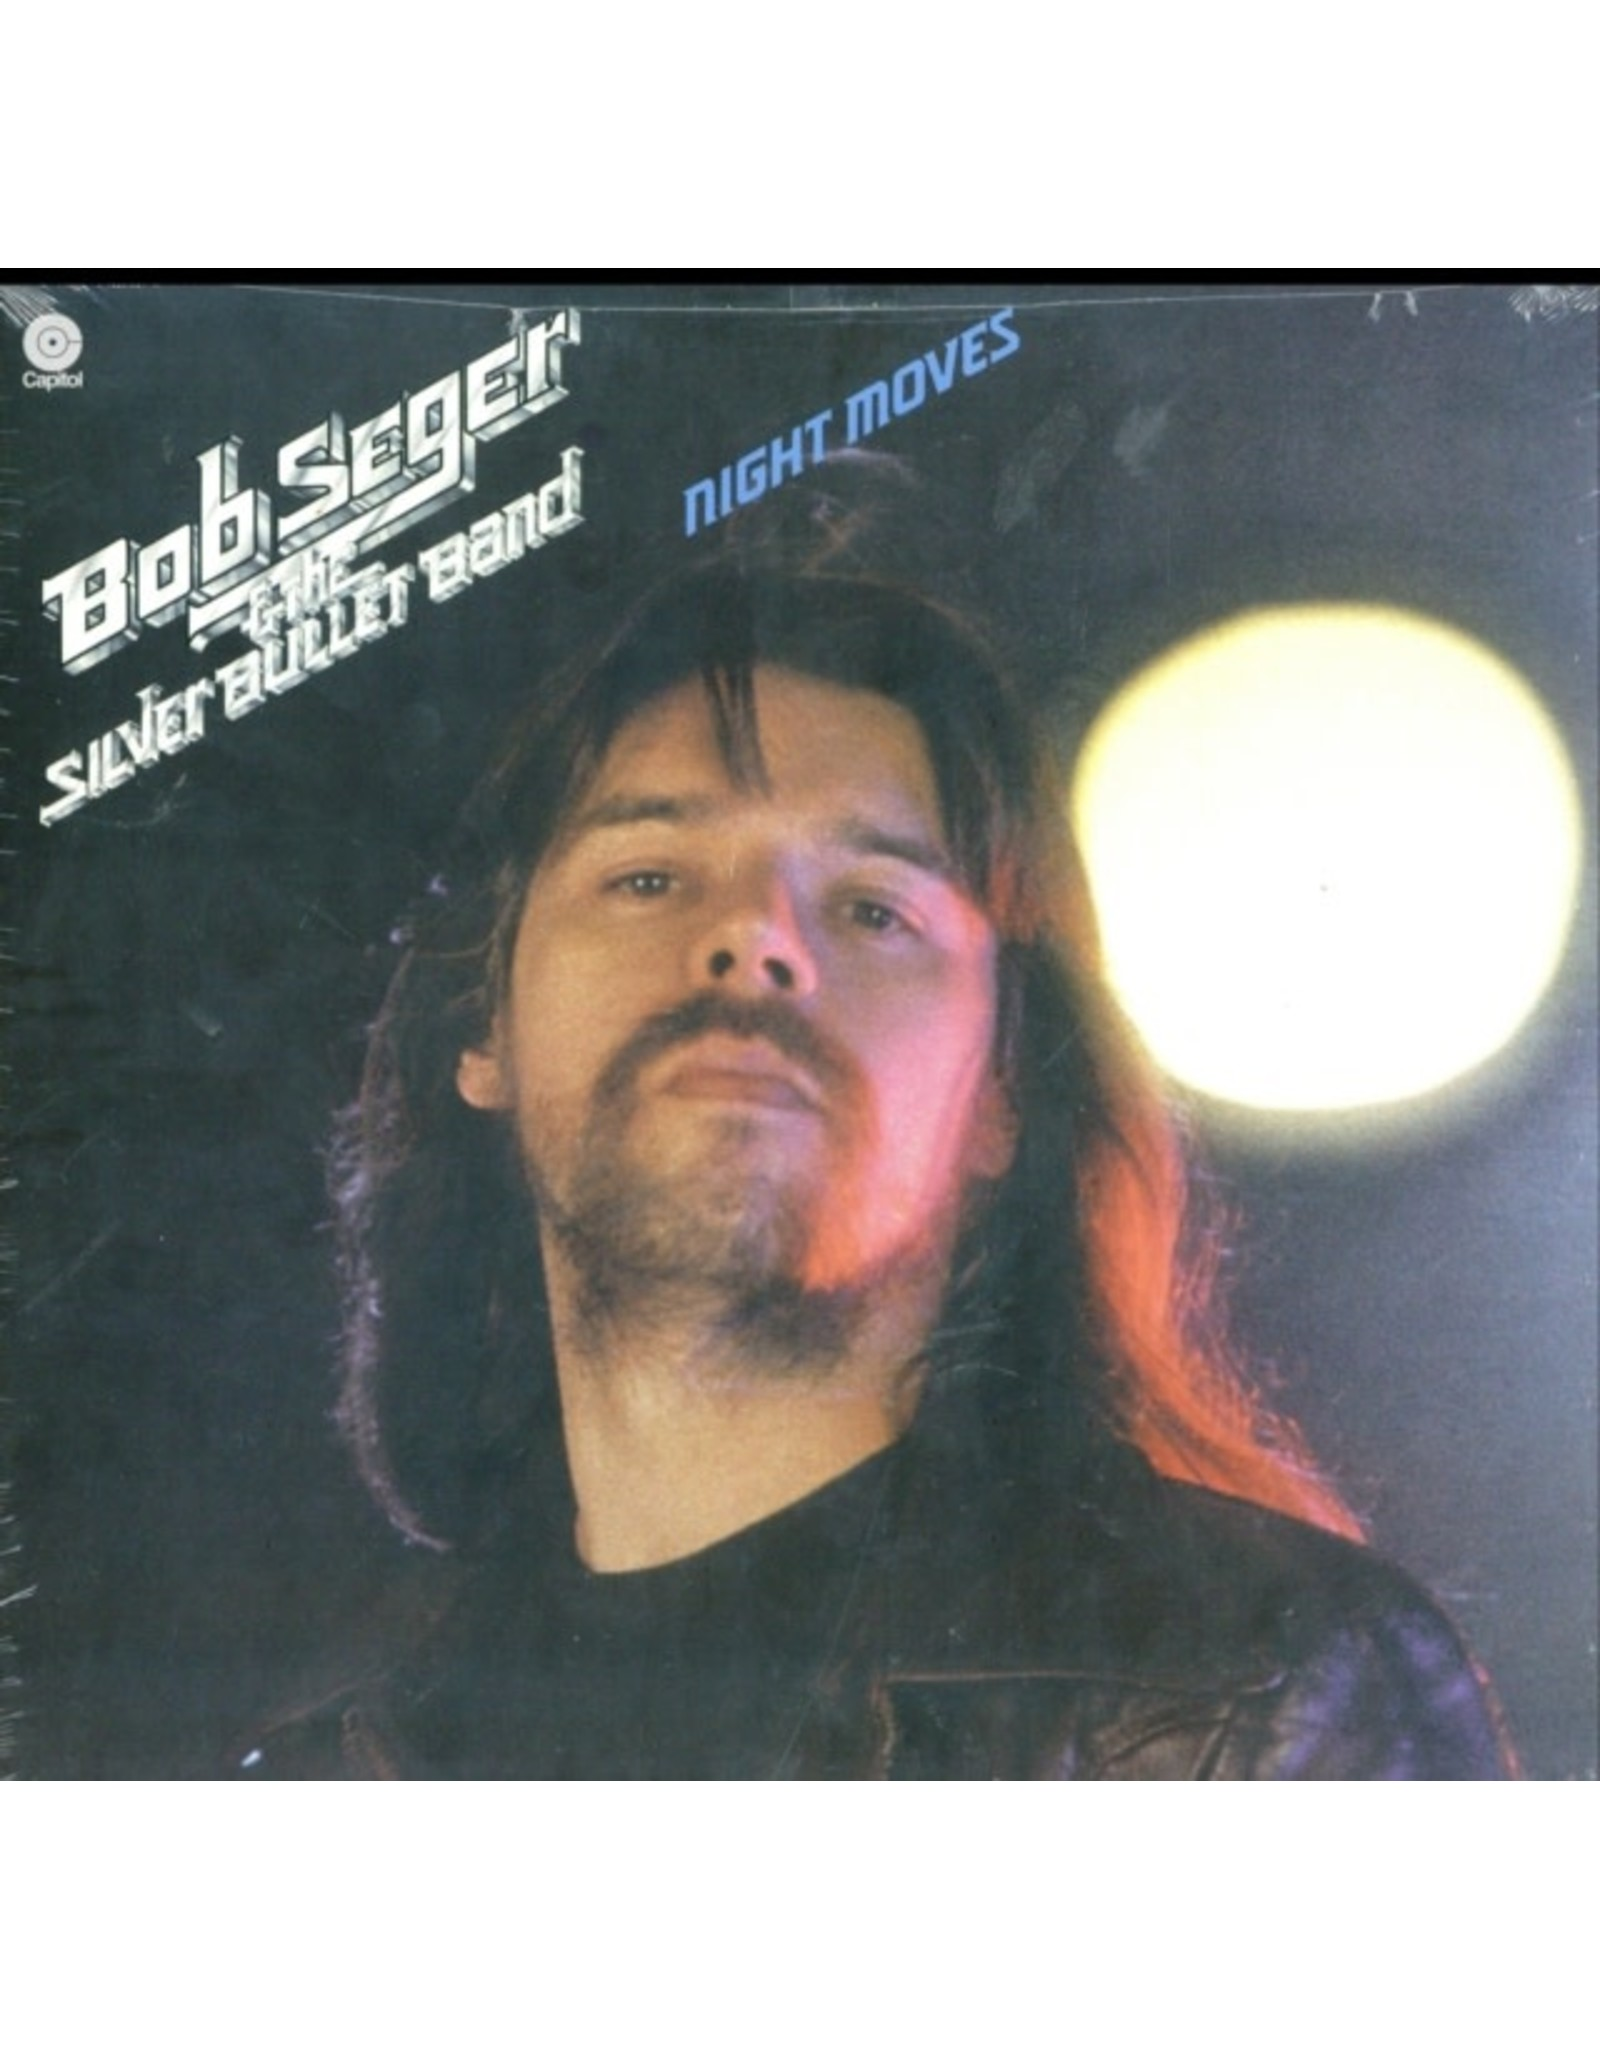 Seger, Bob and the Silver Bullet Band - Night Moves CD